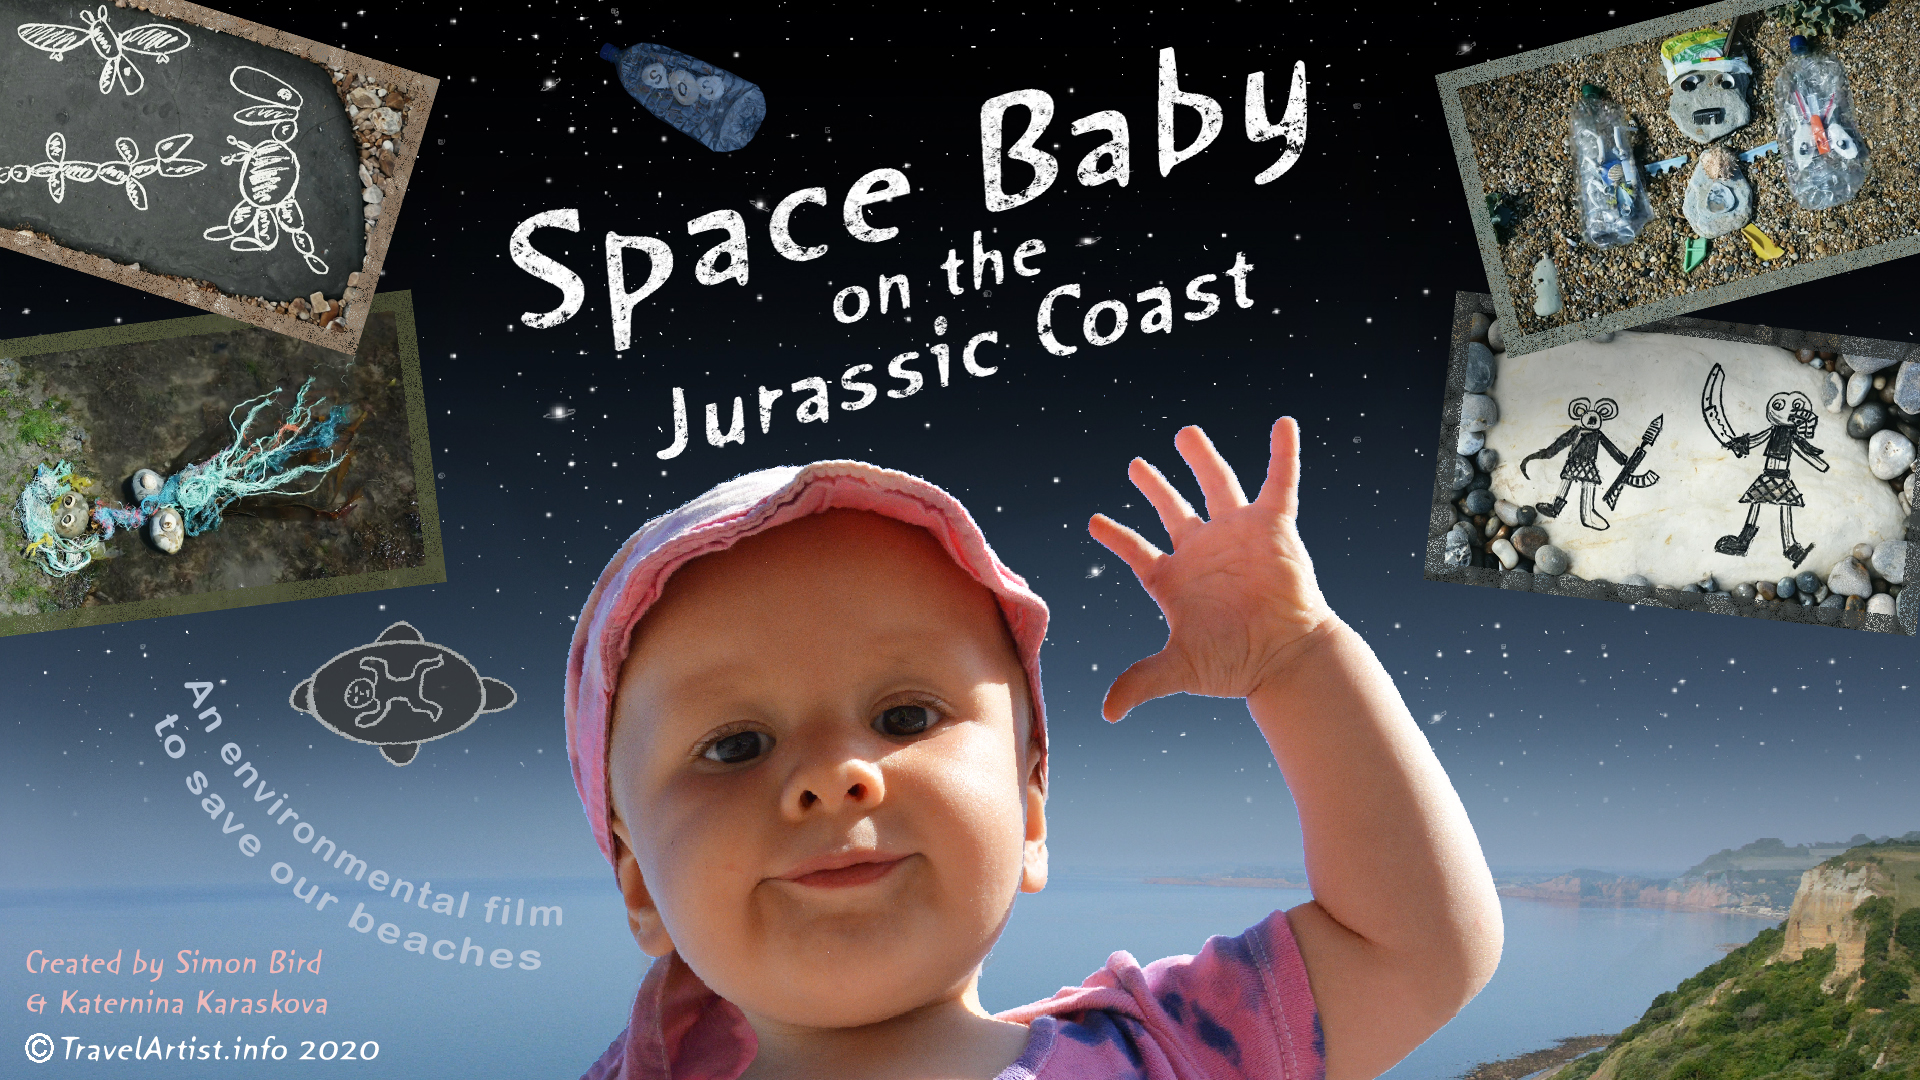 SpaceBaby on the Jurassic Coast